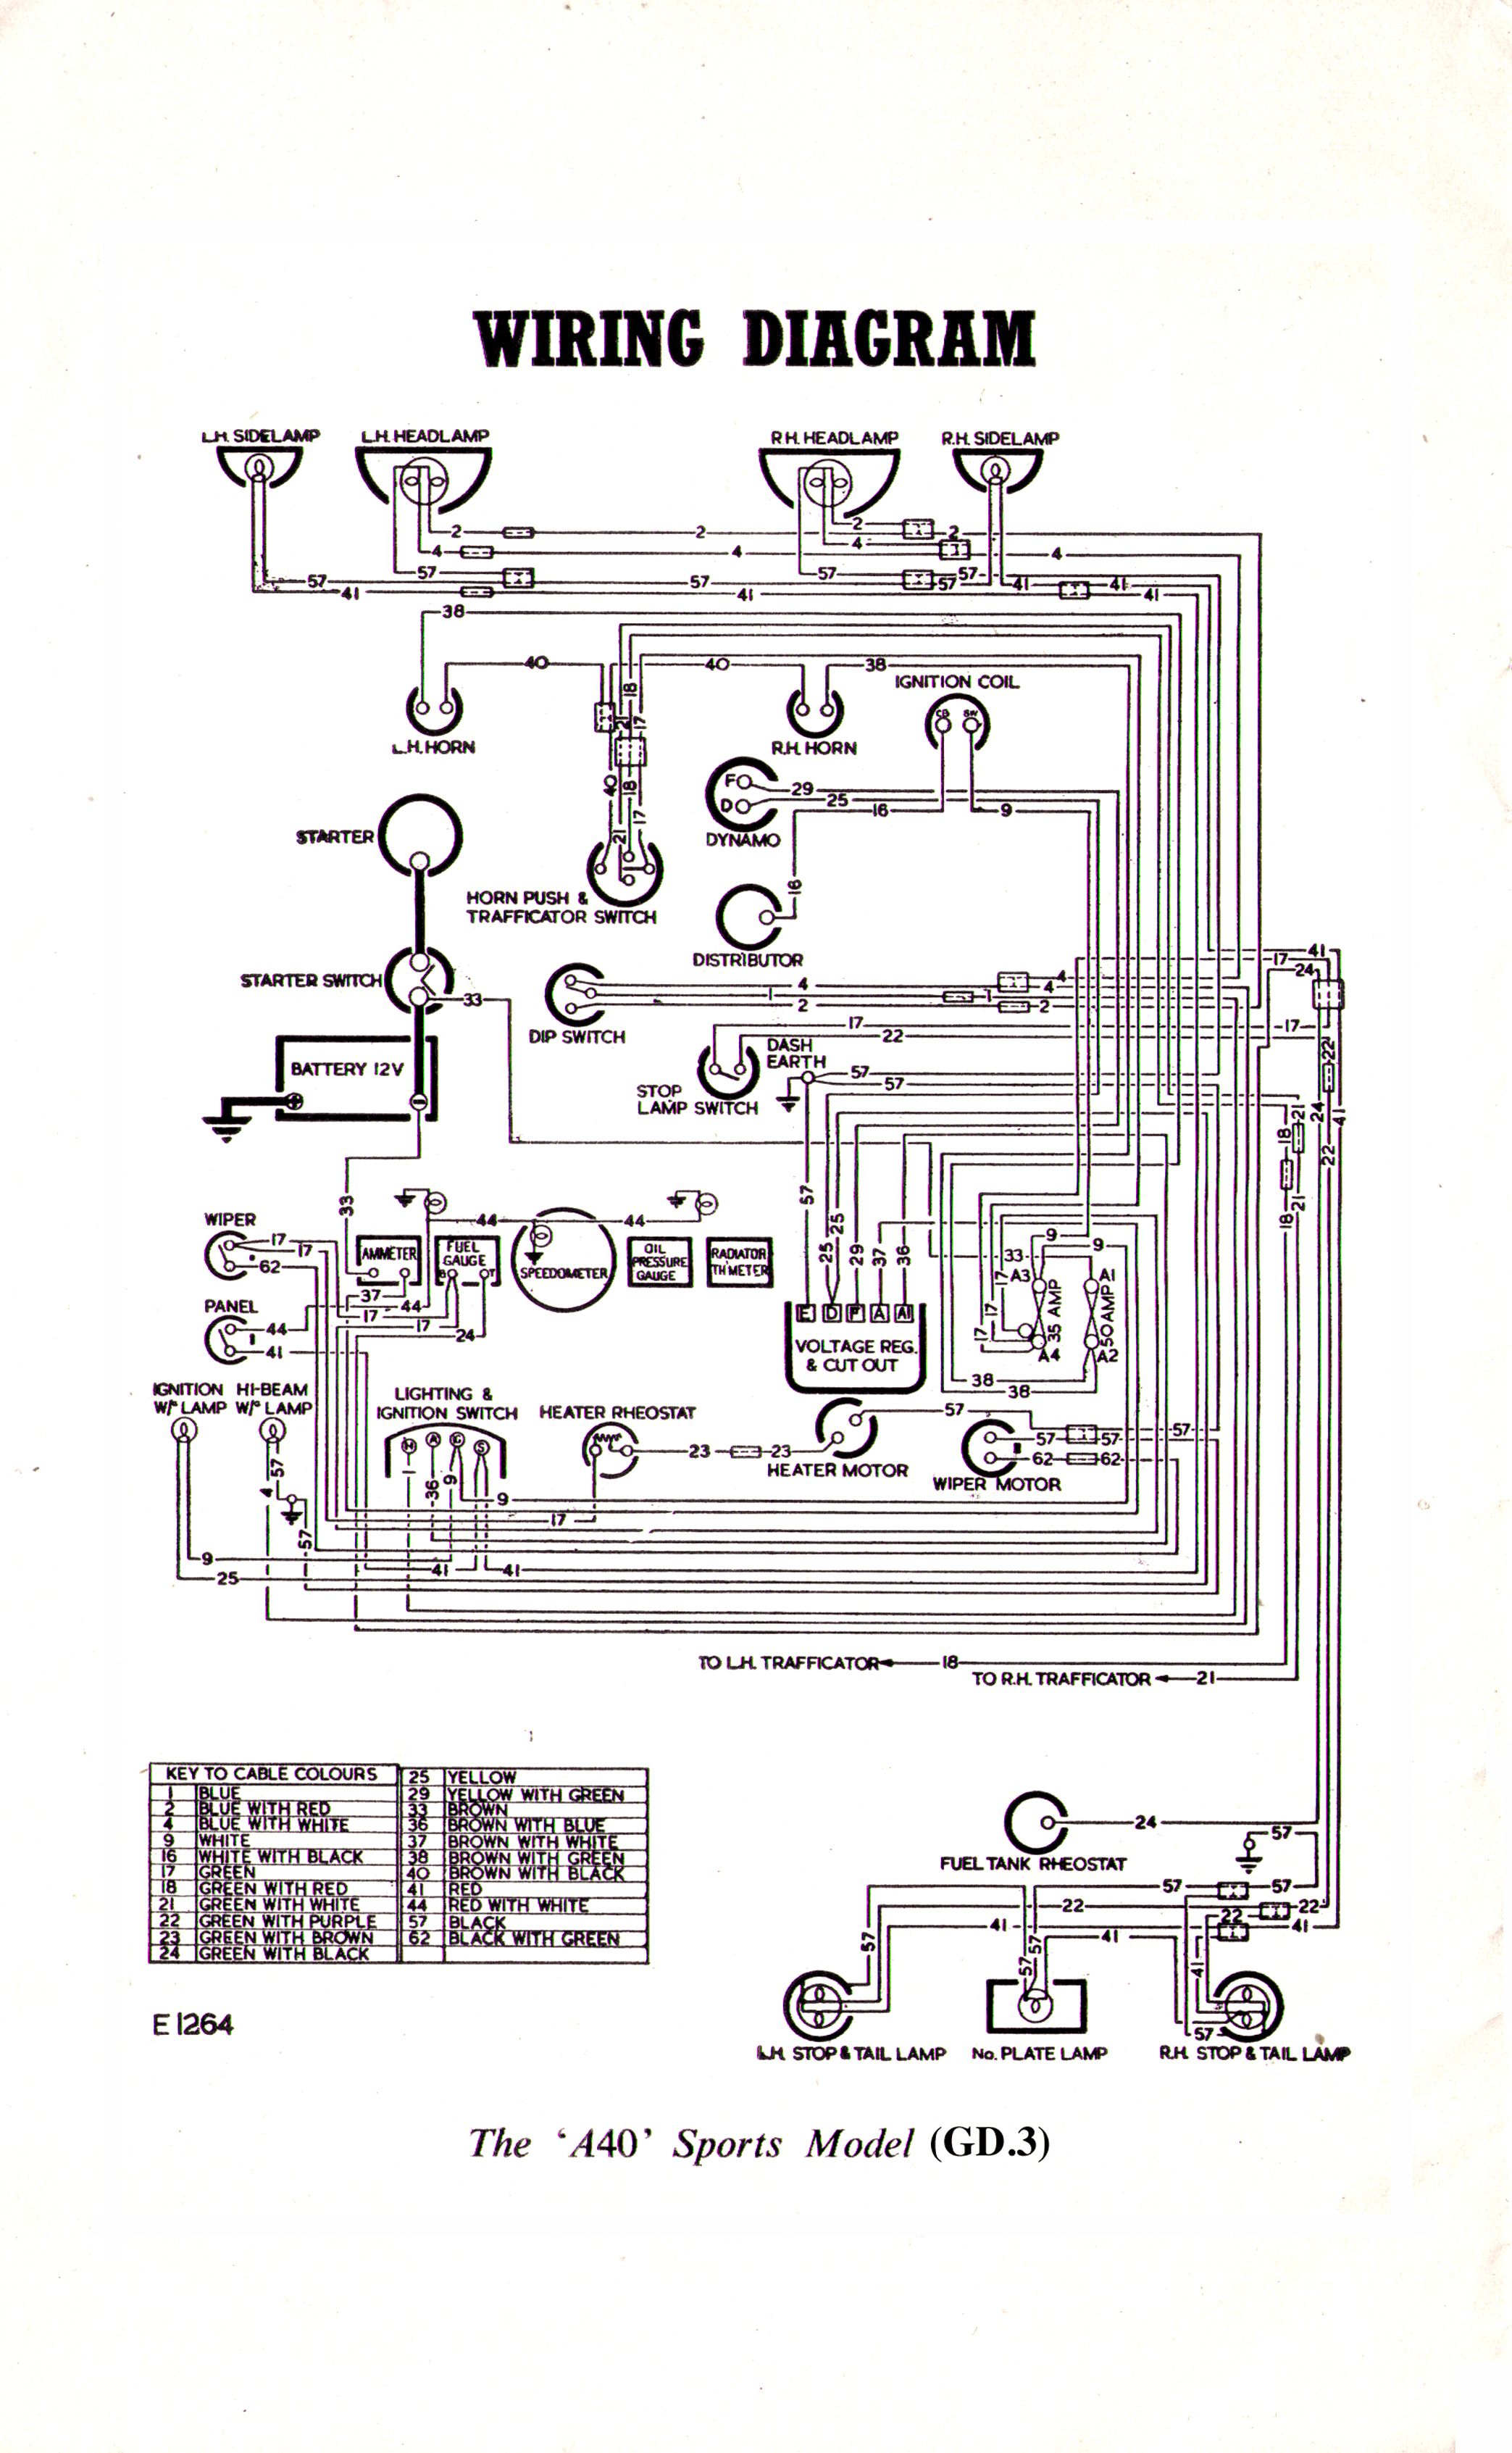 Austin A40 Sports GD3 - wiring diagram | Diagram, Wire ... on